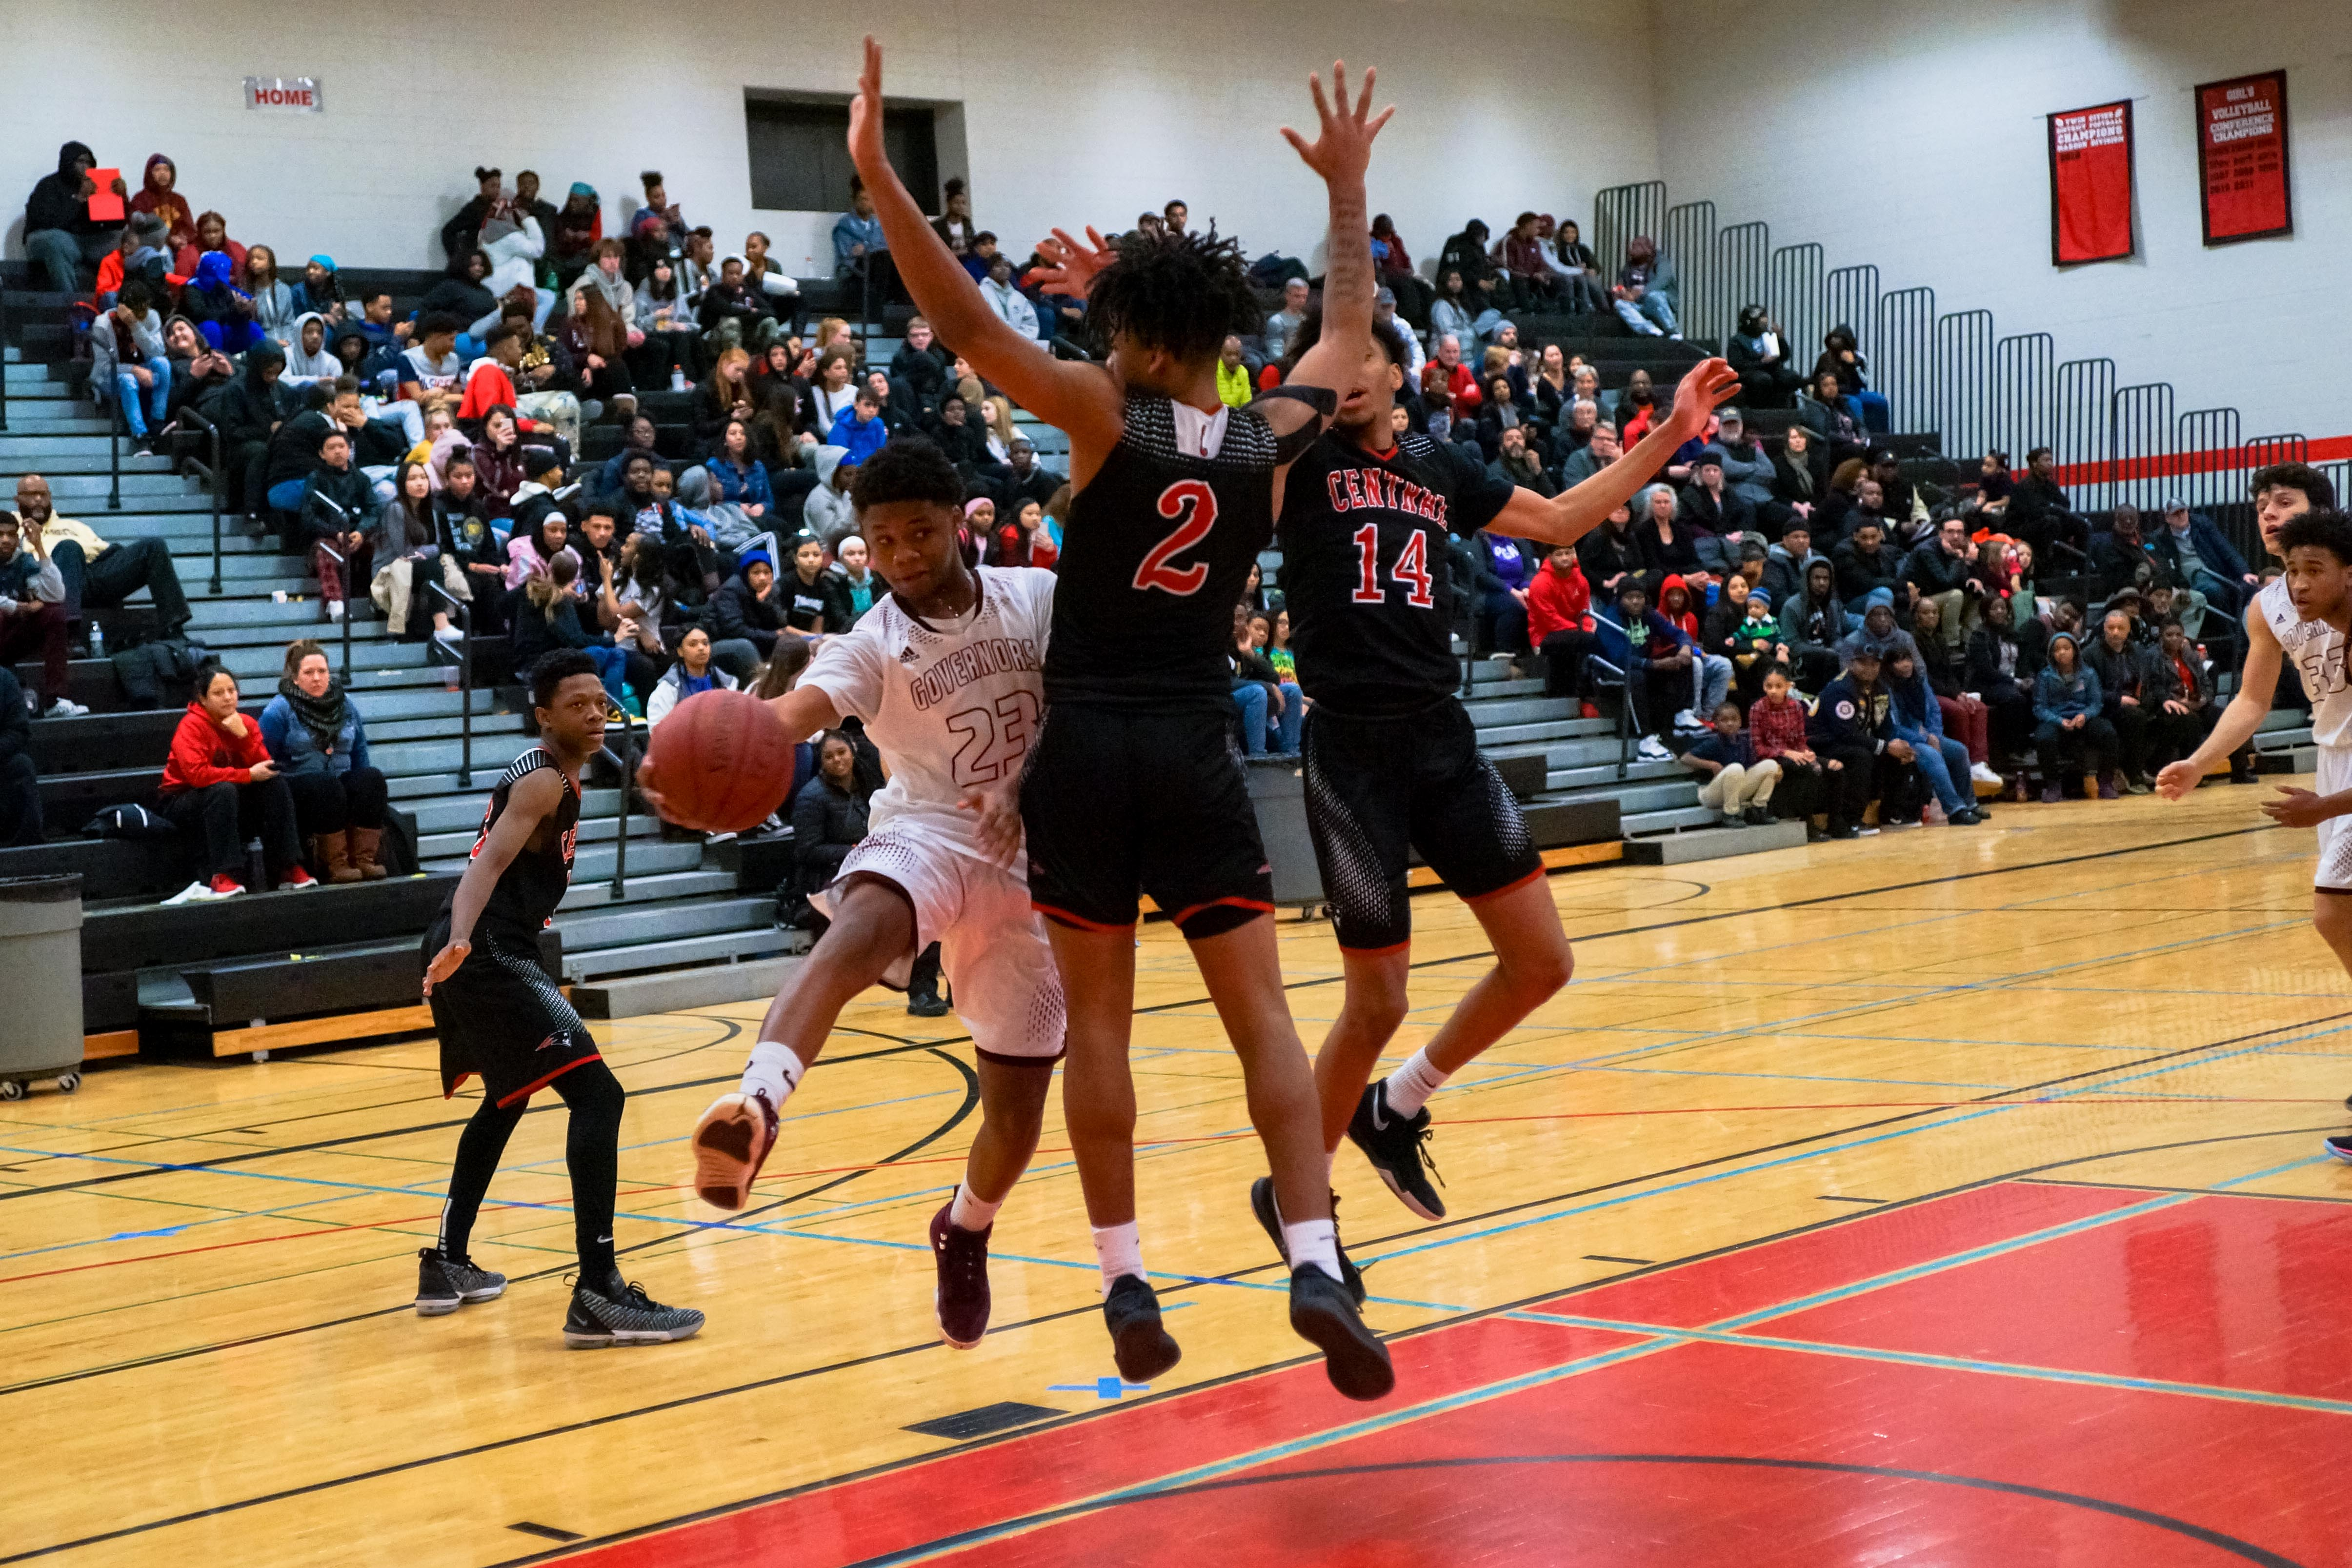 St. Paul Central teammates Ricardo Martinez (2) and Donnie Preston (14) force St. Paul Johnson's Jordan Gaultney to pass after an attempted drive to the basket. Photo by Korey McDermott, SportsEngine